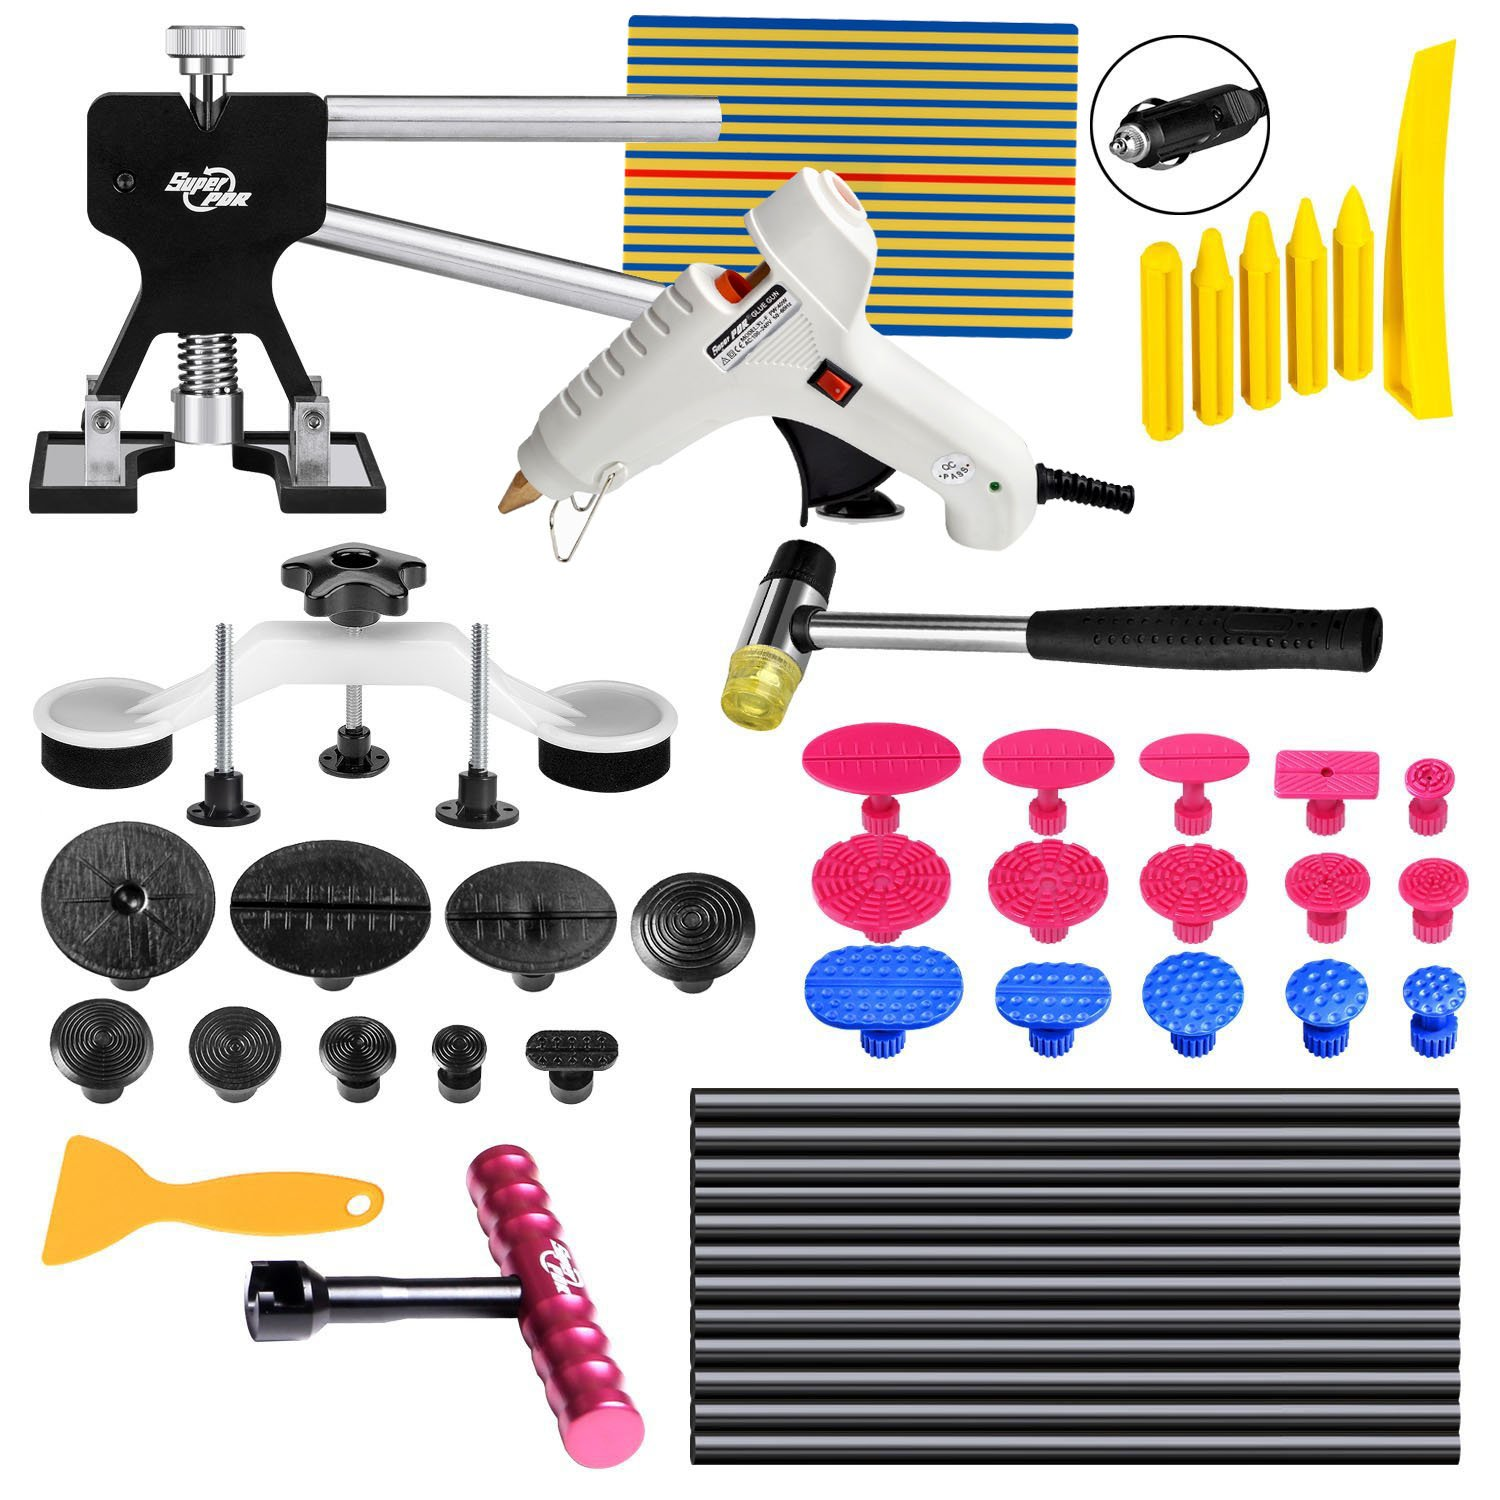 FLY5D® 49Pcs Car Body Paintless Dent Repair Tools Set Kits Puller Lifter Hail Slide Hammer Glue Gun Stick